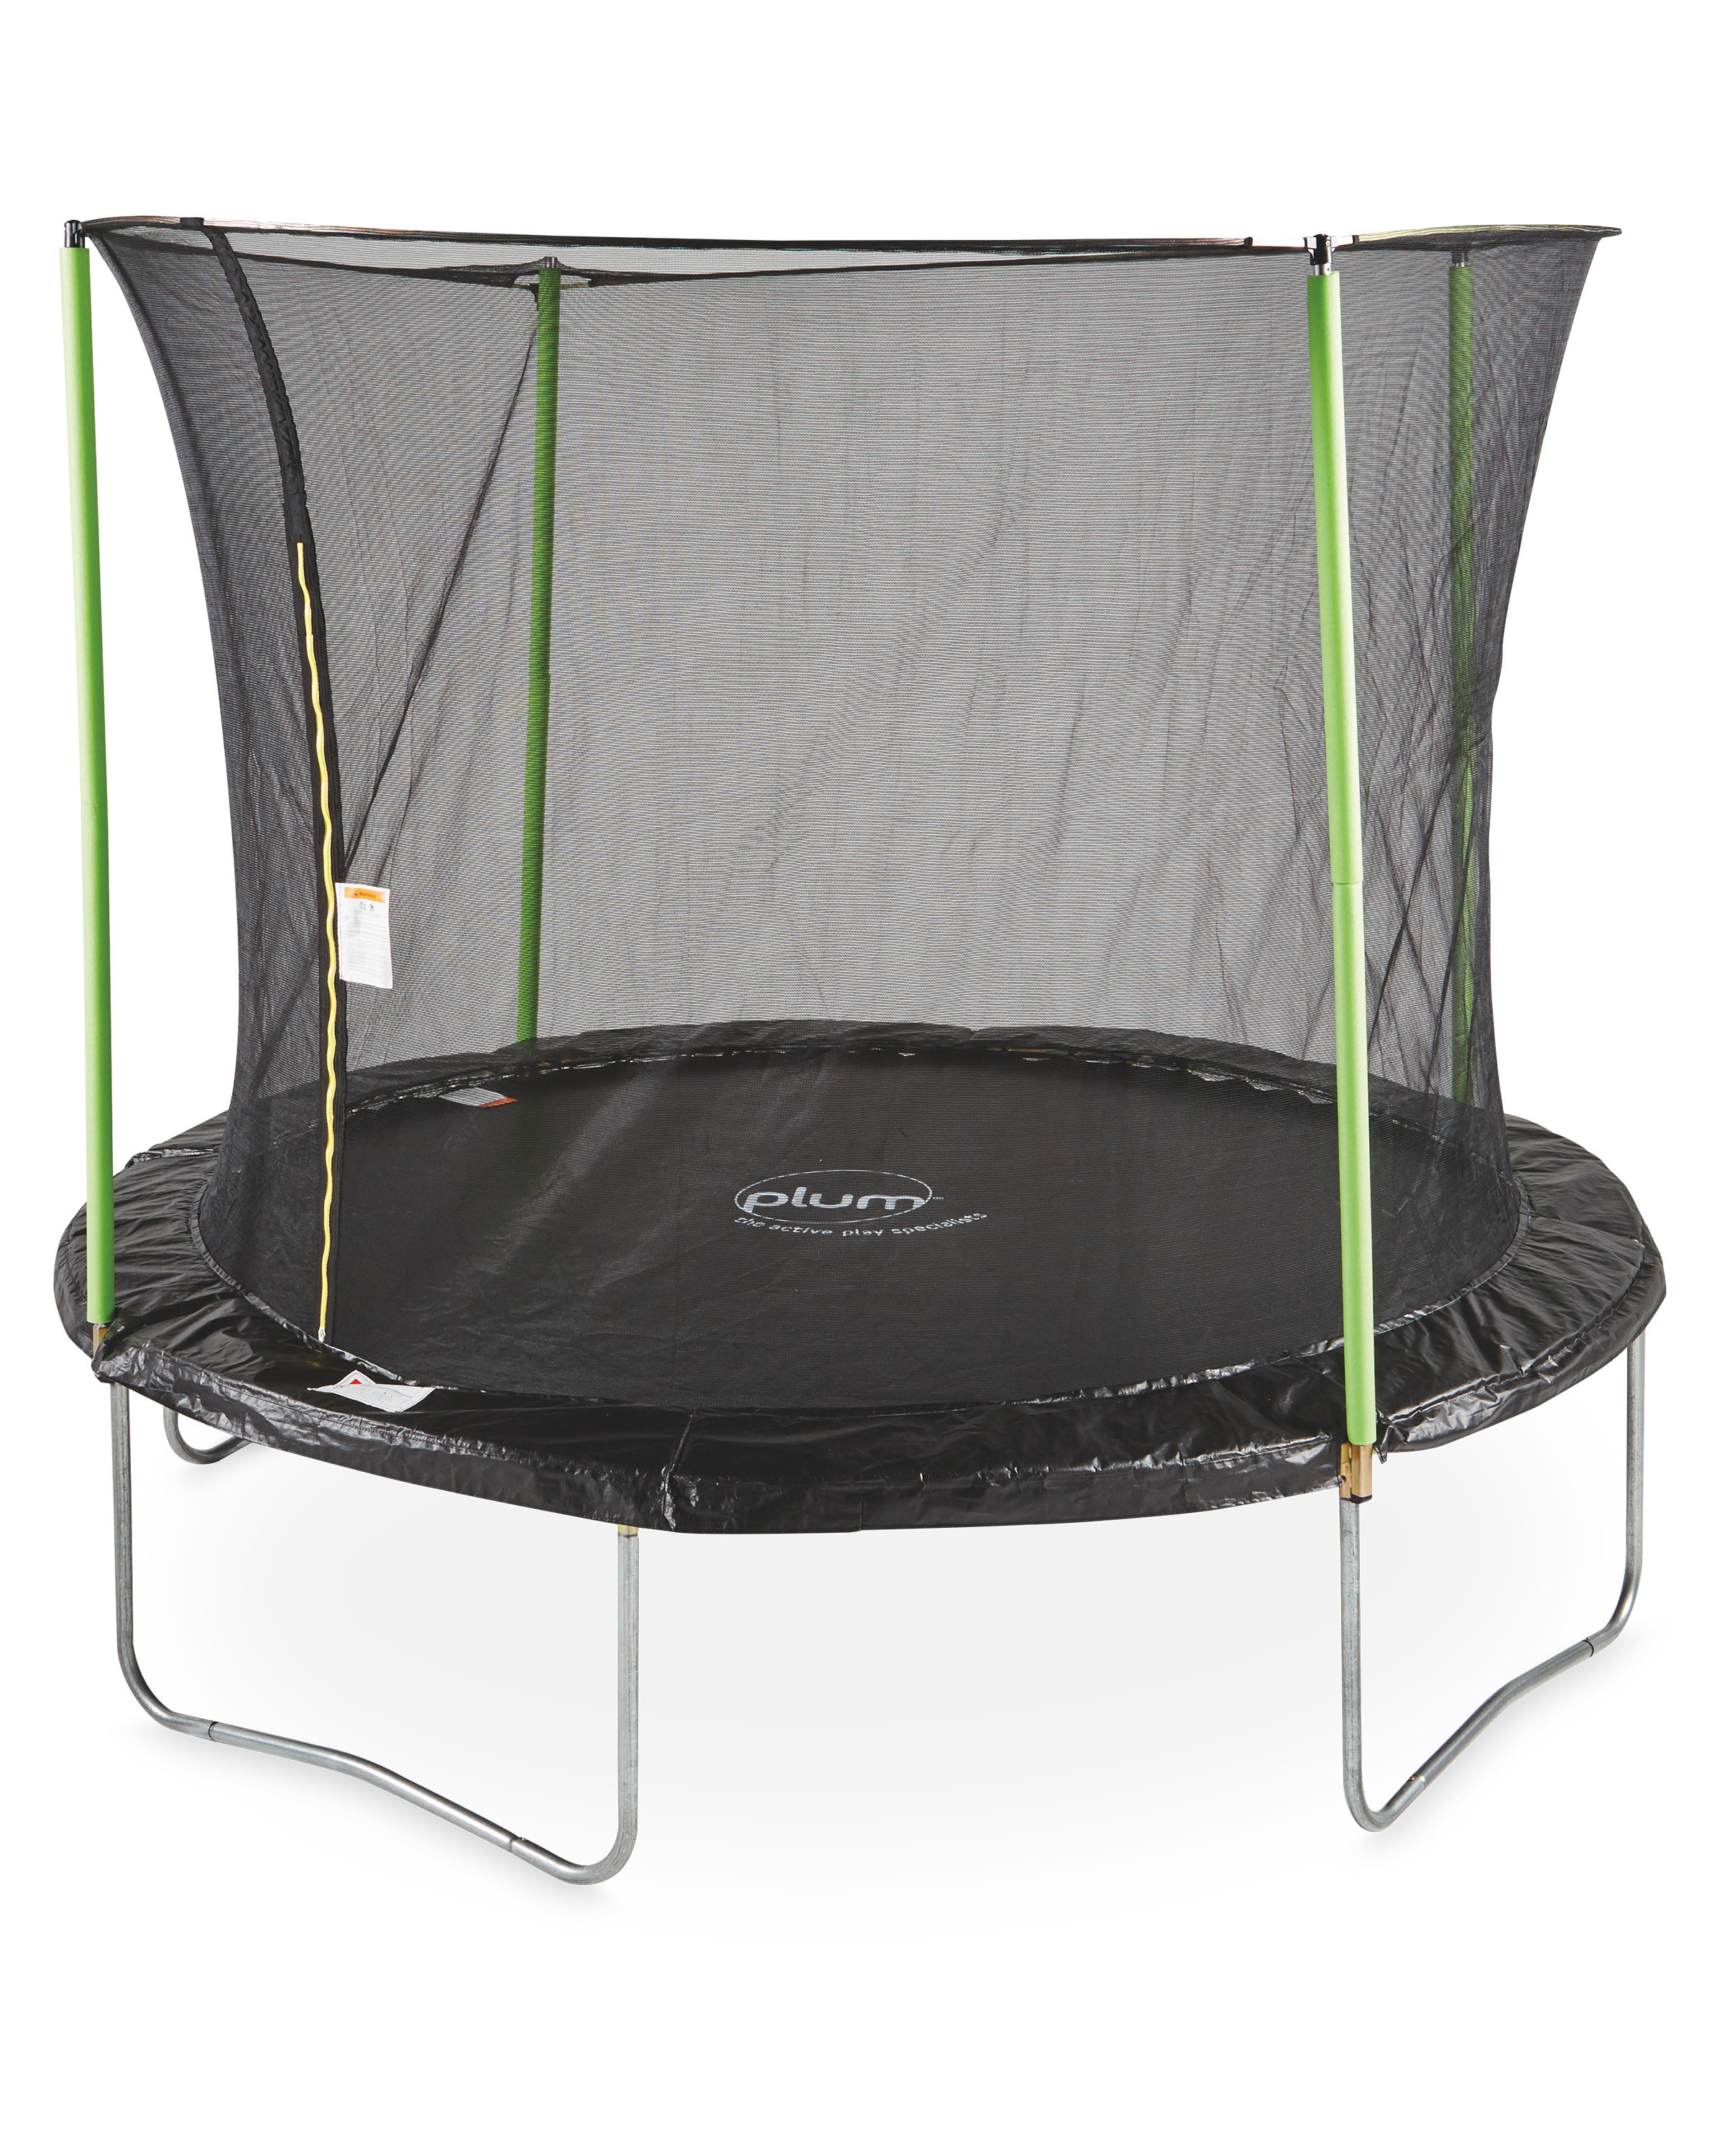 10ft Trampoline Toys R Us Uk